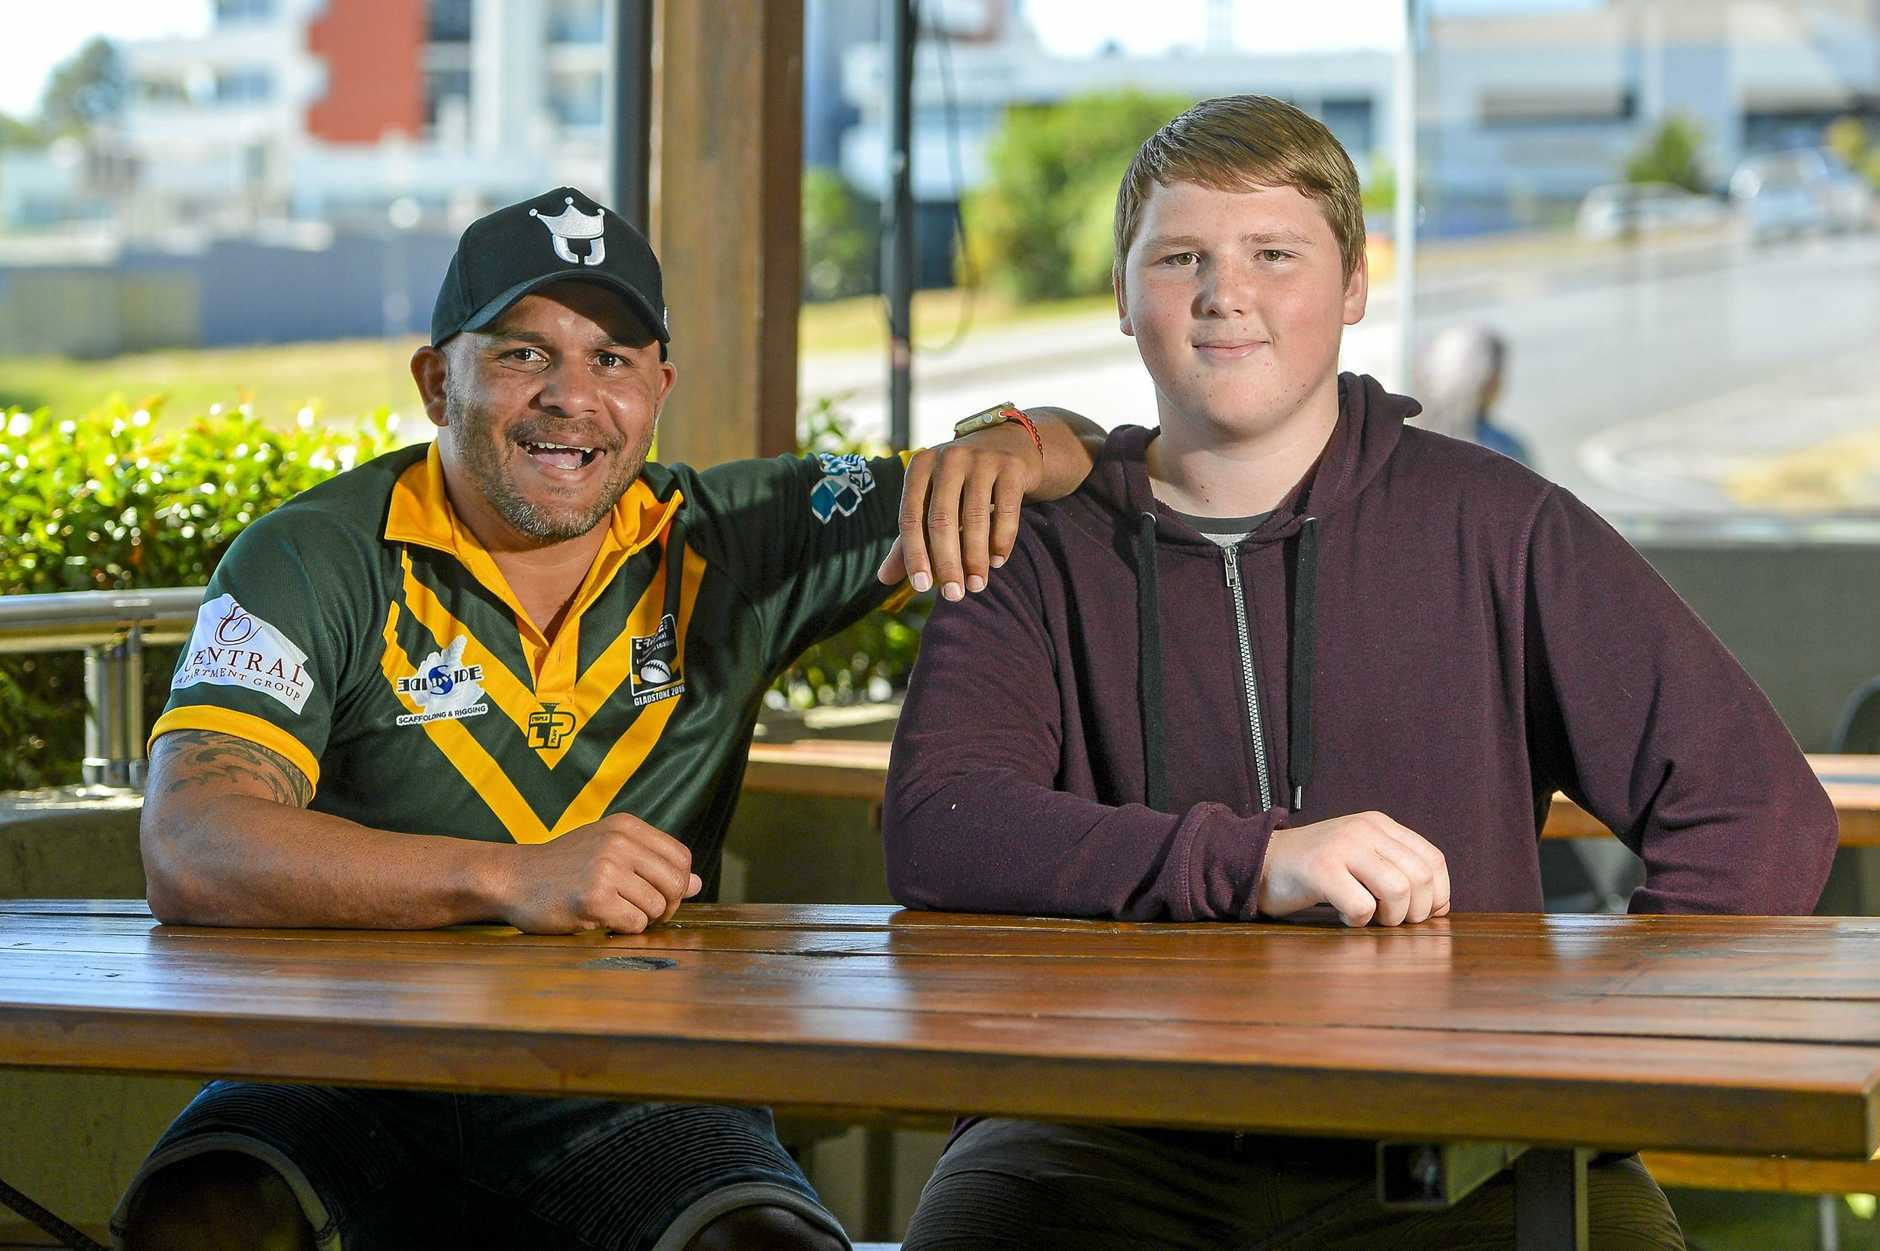 DOUBLE TROUBLE: Gladstone boy, Matt Bowen was named after his parents' favourite football player, Matt Bowen, who he met at Central Lane Hotel Gladstone, during the tour of the Rugby League Legends of League tour.